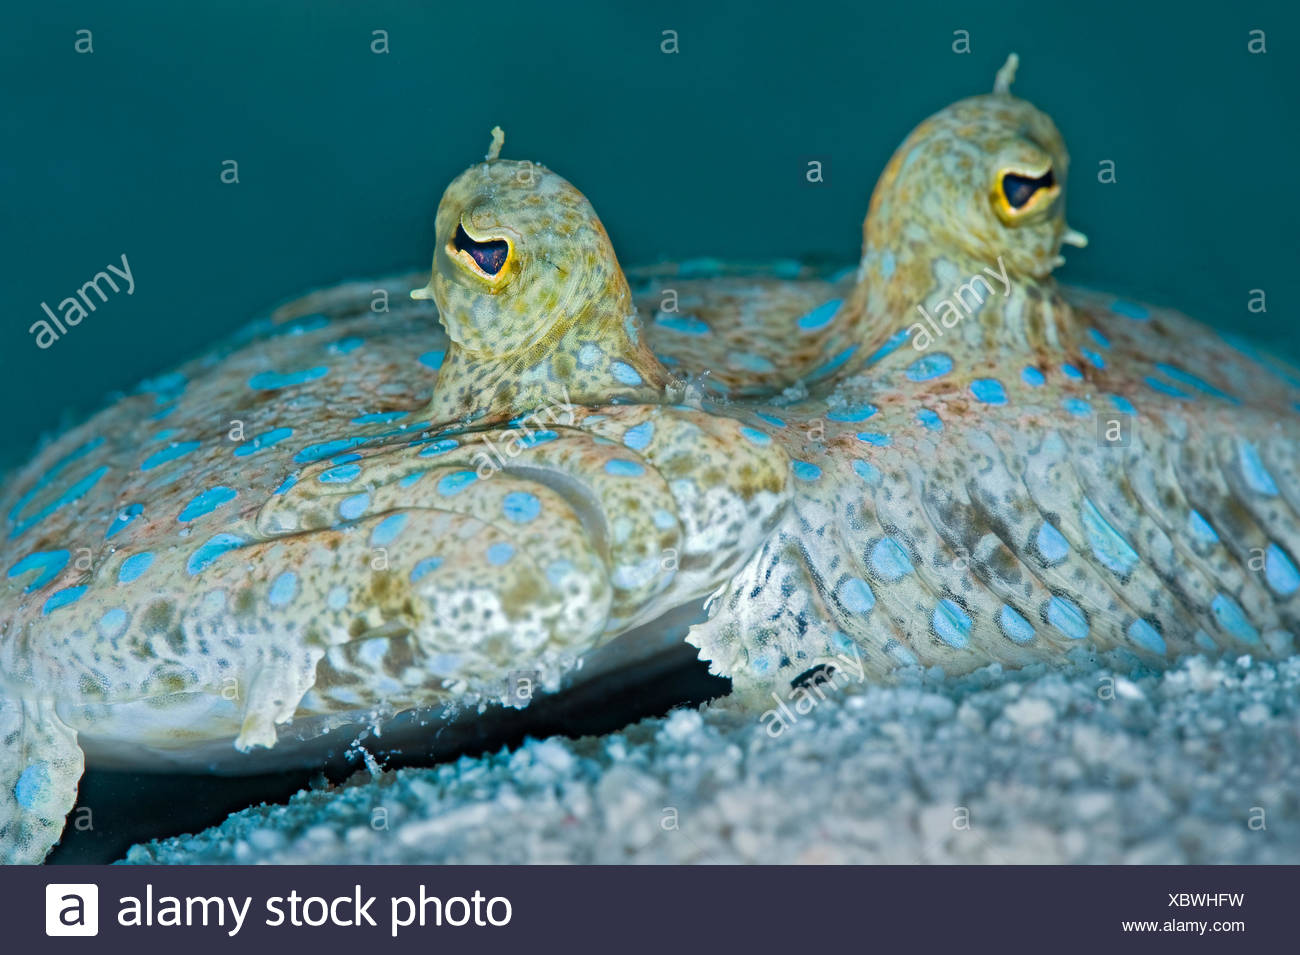 Peacock flounder (Bothus lunatus) resting on the seabed, East End, Grand Cayman, Cayman Islands, British West Indies, Caribbean Sea. - Stock Image